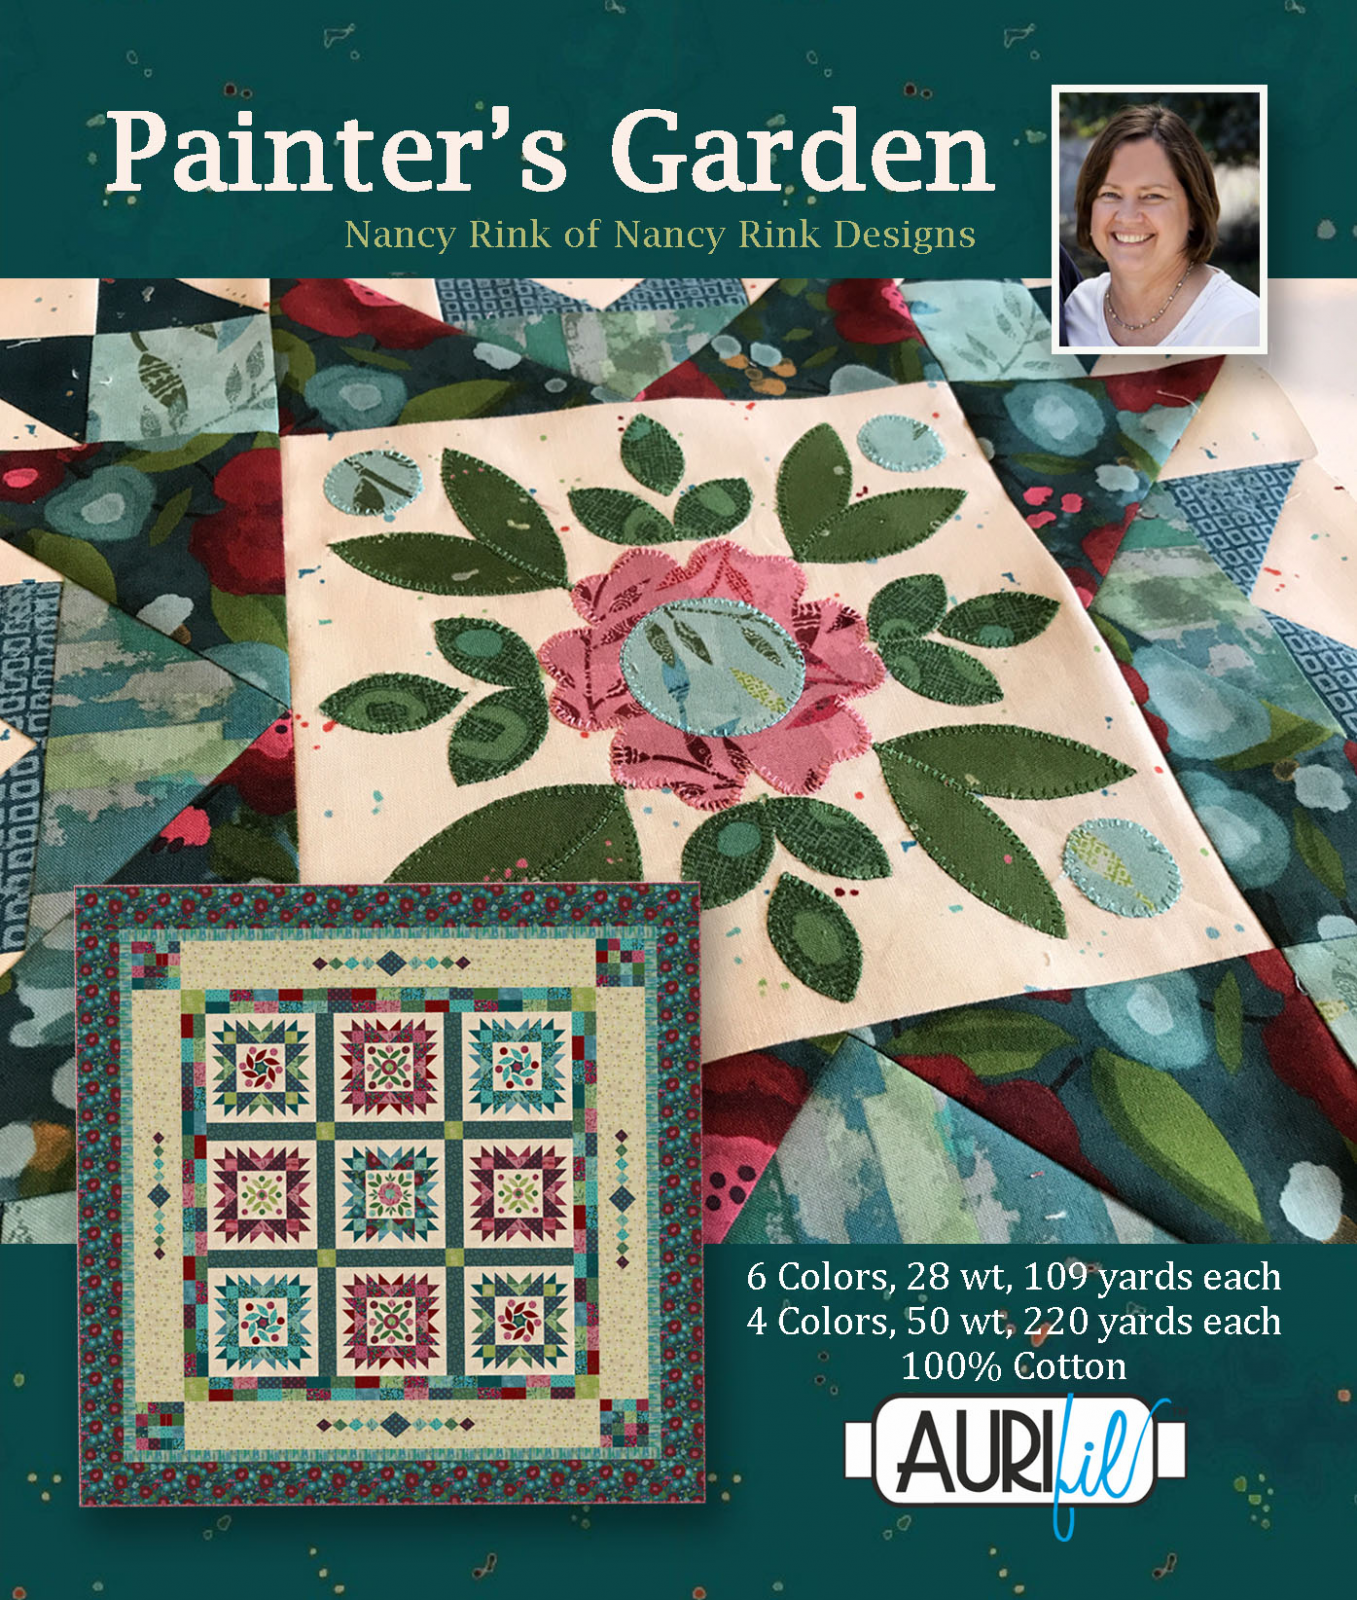 Aurifil - Painter's Garden Collection by Nancy Rink Cotton 50wt 28wt 10 Small Spools